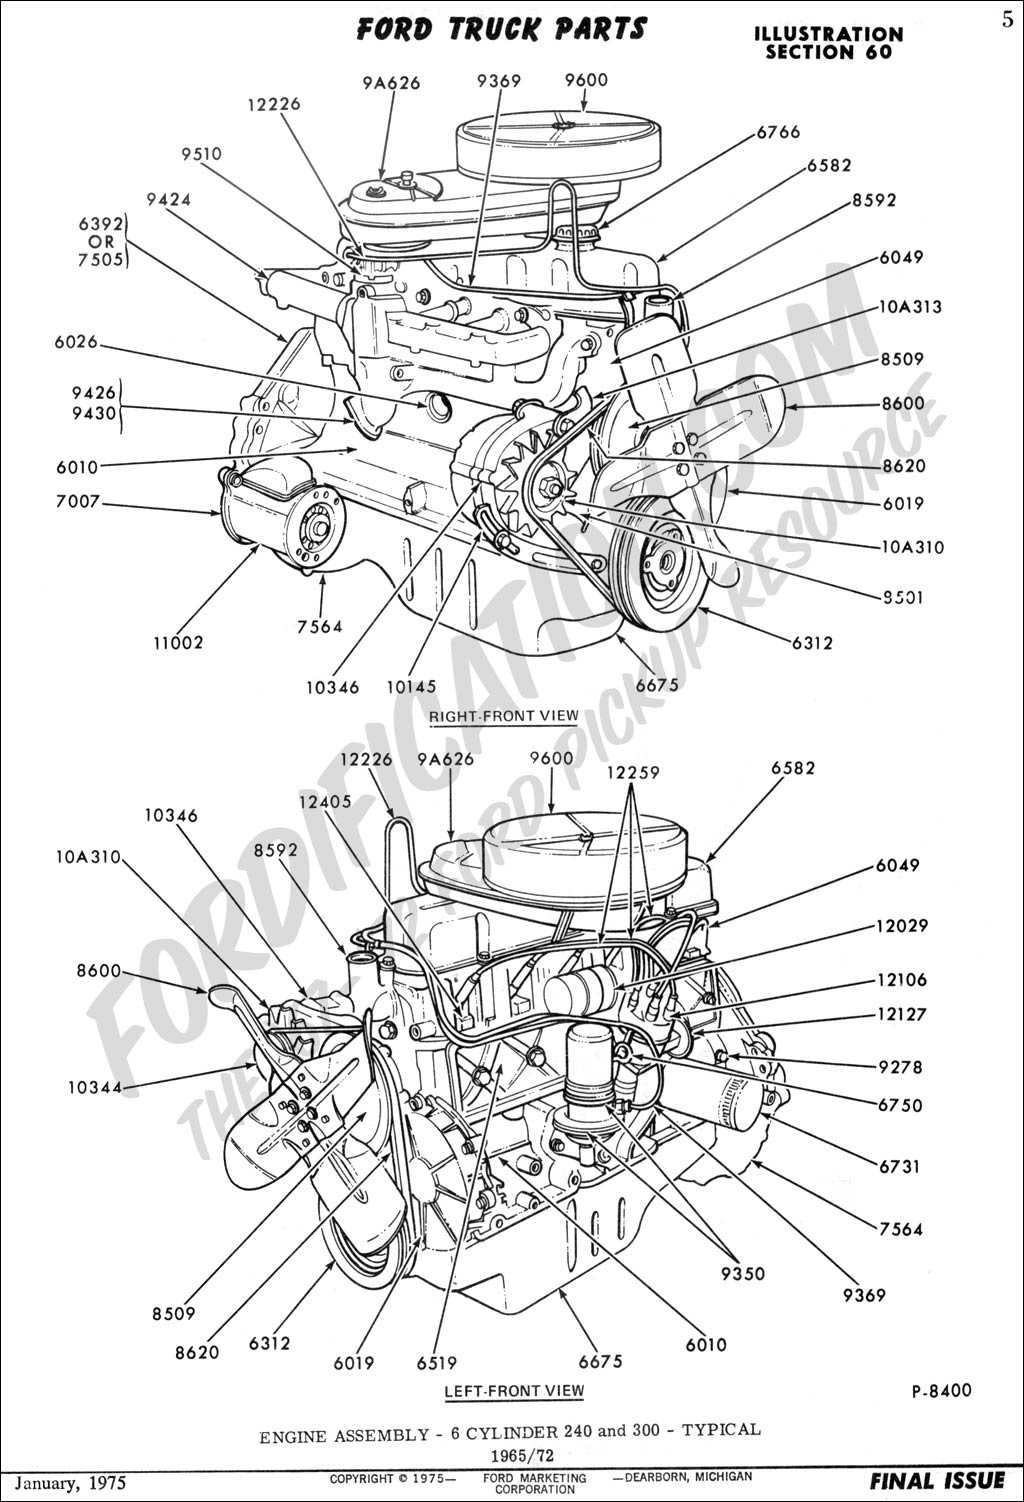 Ford Engine Wiring Diagram : Ford engine diagram get free image about wiring